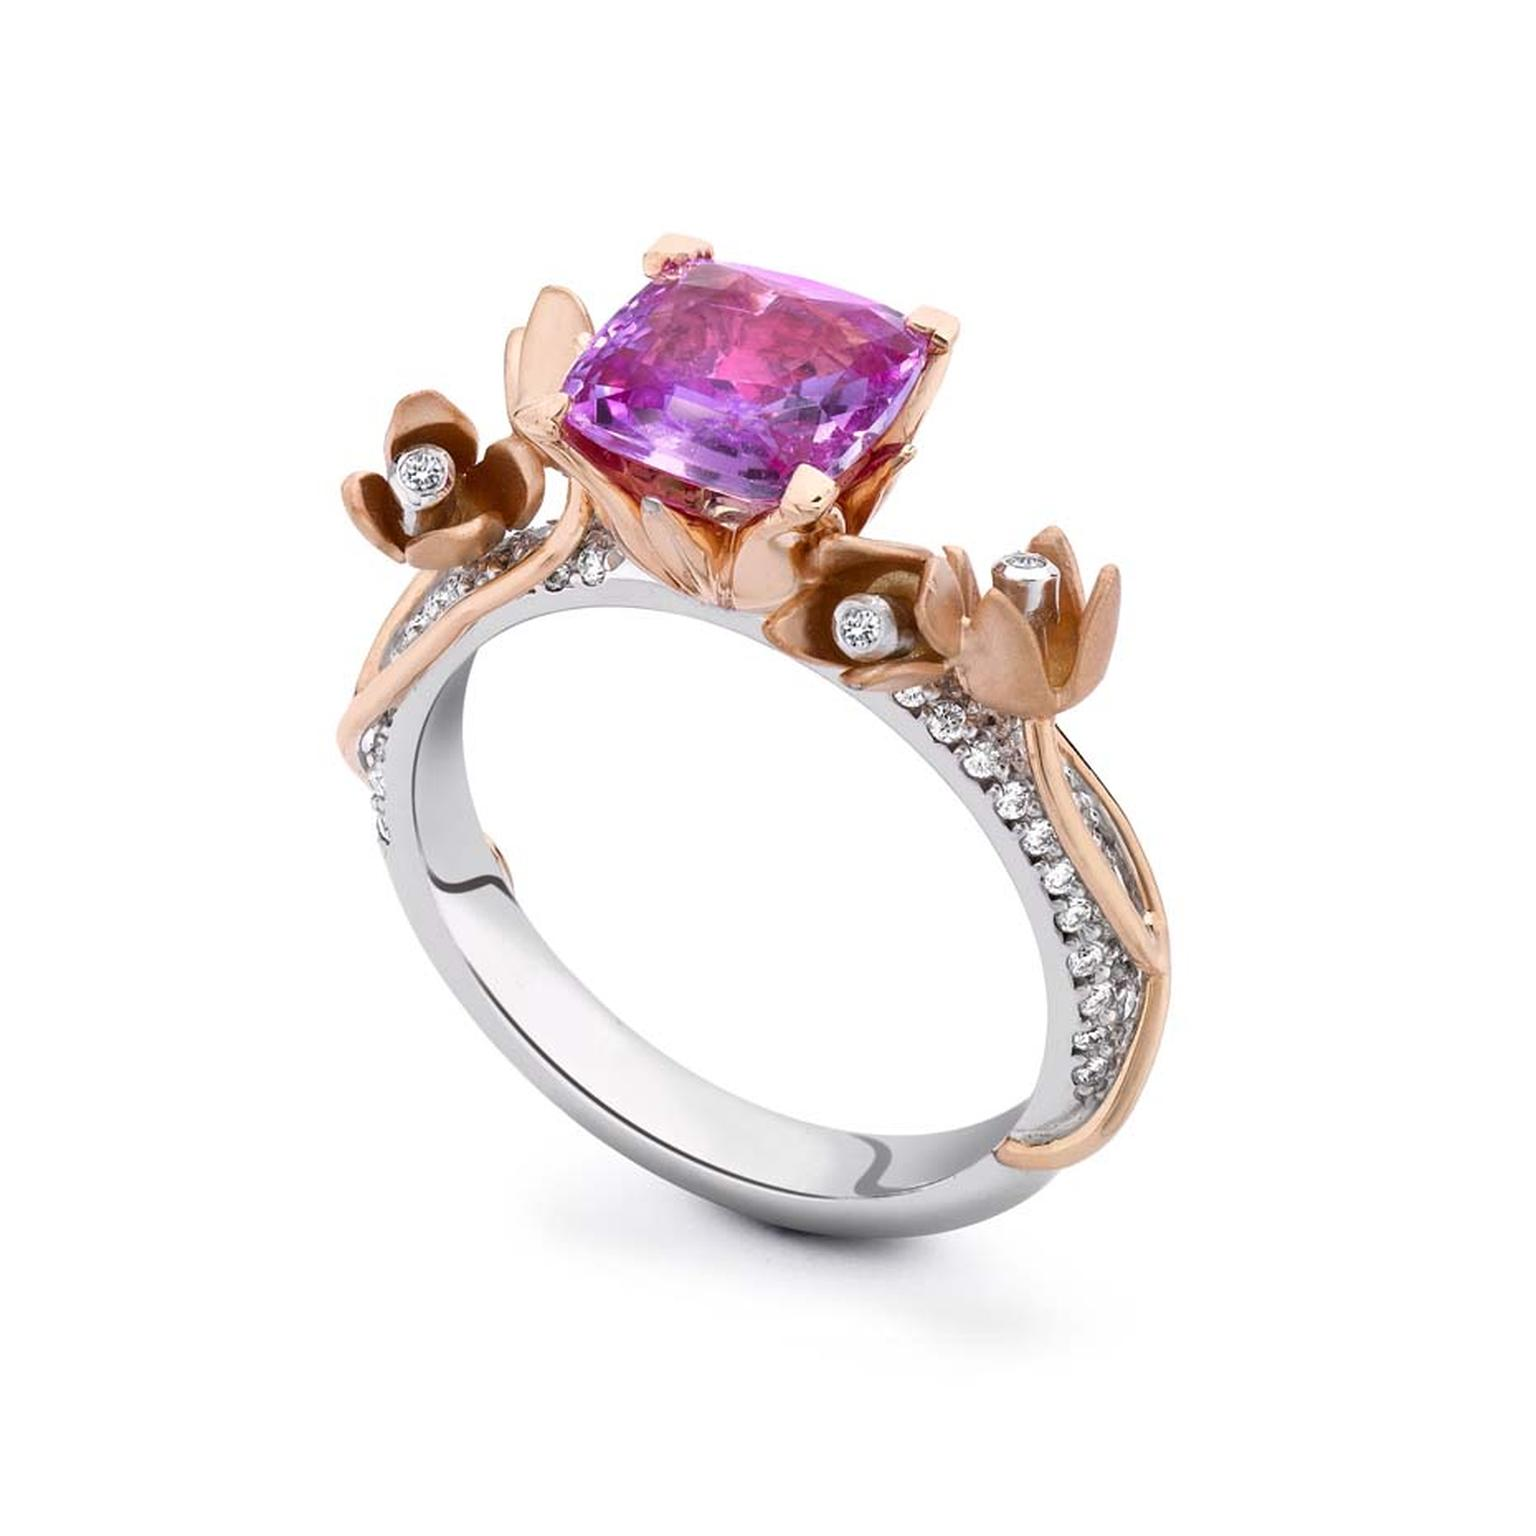 Theo Fennell engagement ring featuring a cushion-cut pink sapphire nestled in a rose gold floral setting on a white gold pavé band.